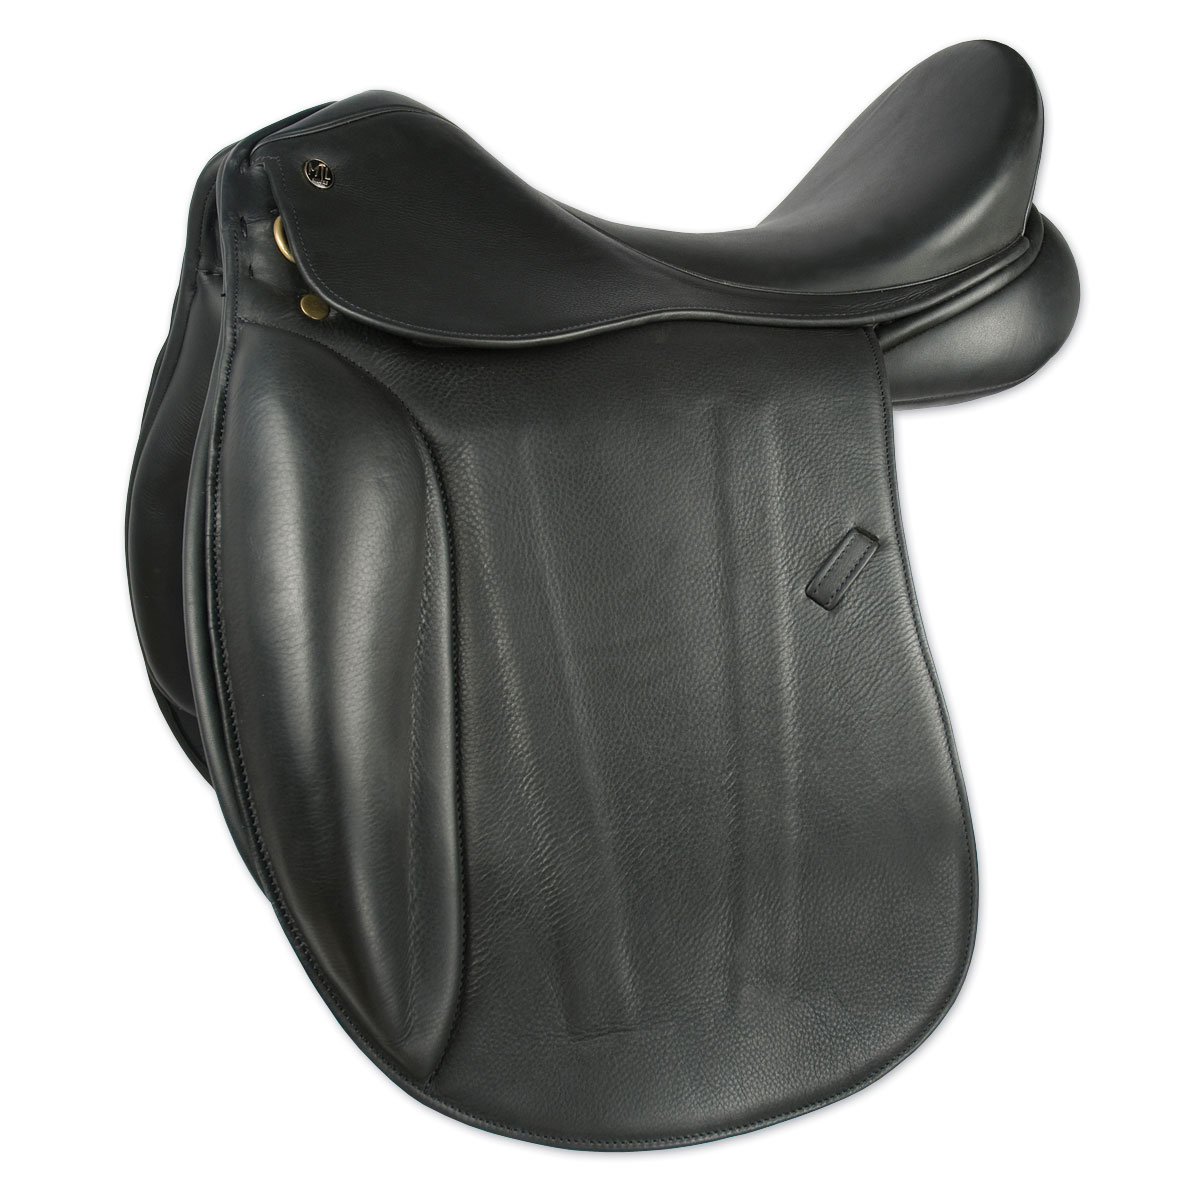 M. Toulouse Verona Monoflap Dressage Saddle- Test Ride Closeout!